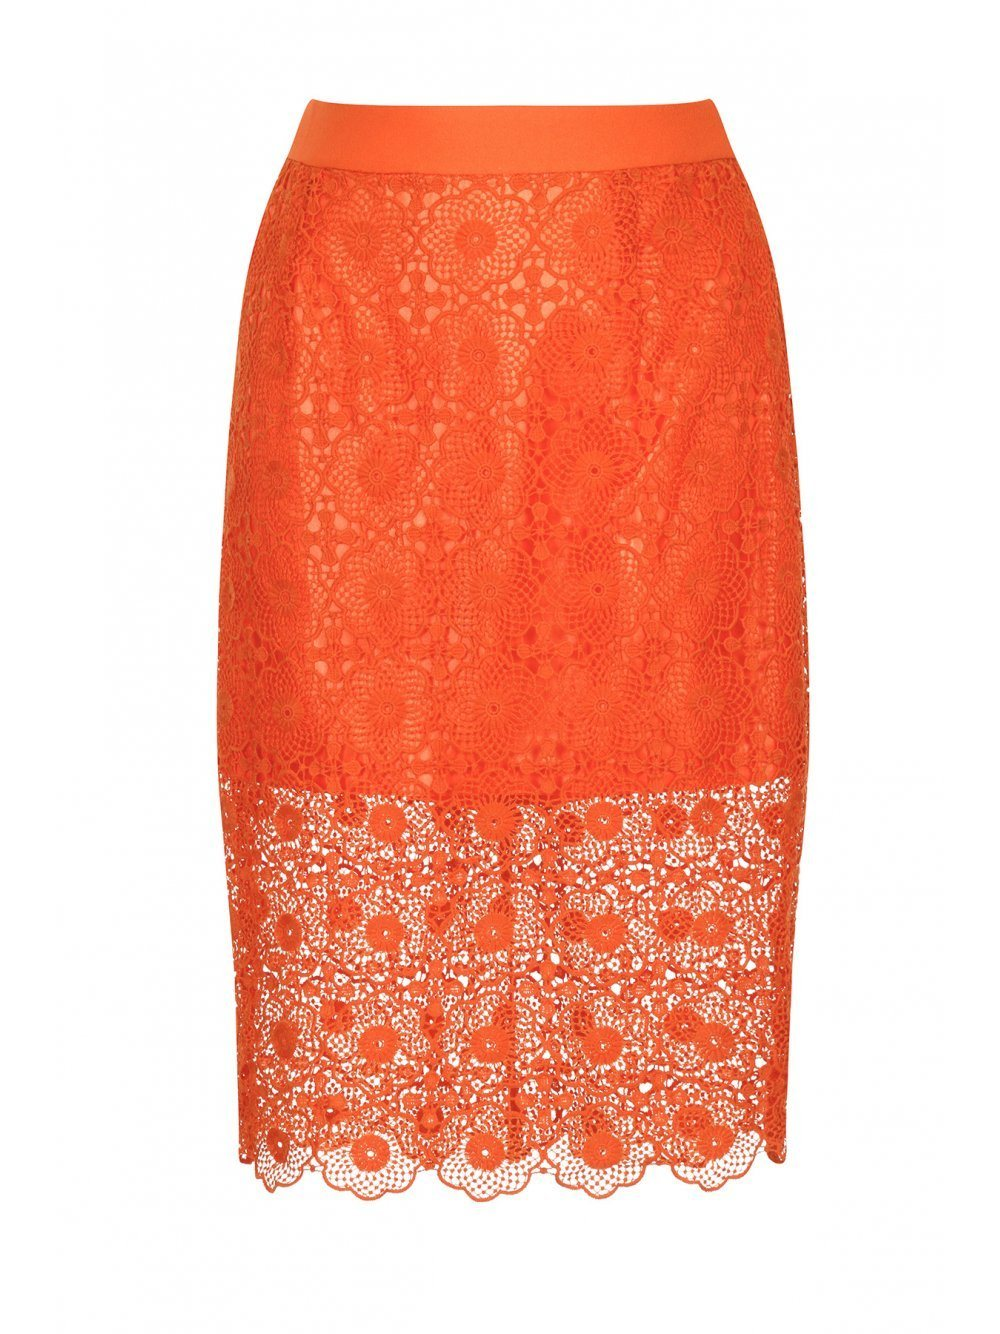 Orange Lace Pencil Skirt